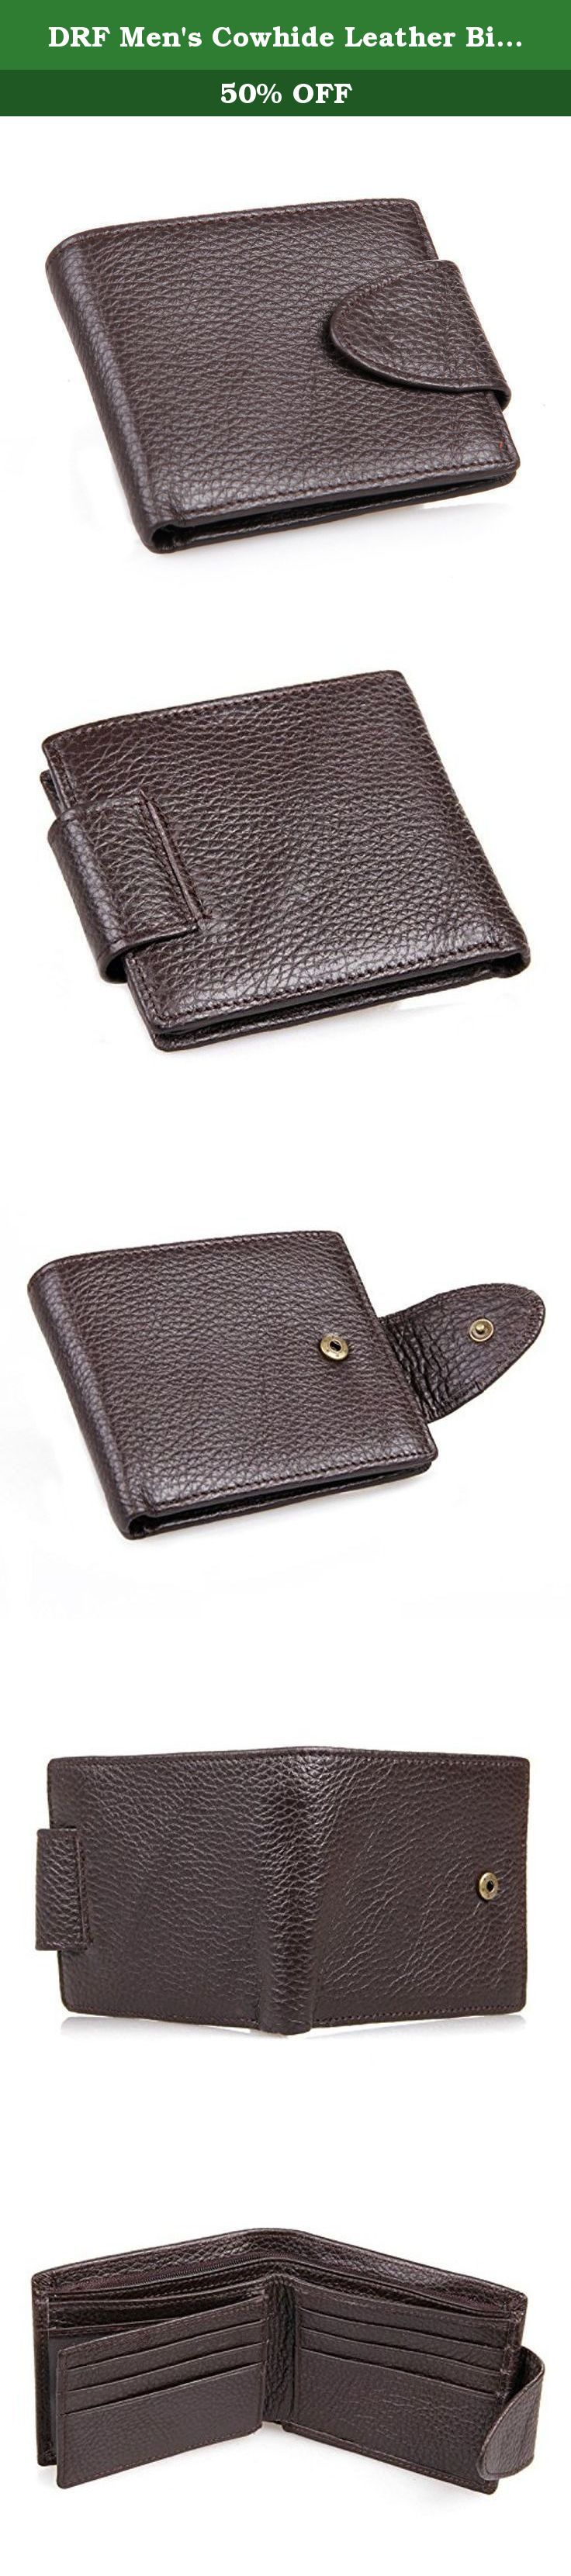 DRF Men's Cowhide Leather Bifold Wallet Blocking Snap Button Clasp BG-51 (Brown). DRF wallets are the perfect wallet for the everyday man. they are made of leather and with quality that will last as long as you want to carry it. .